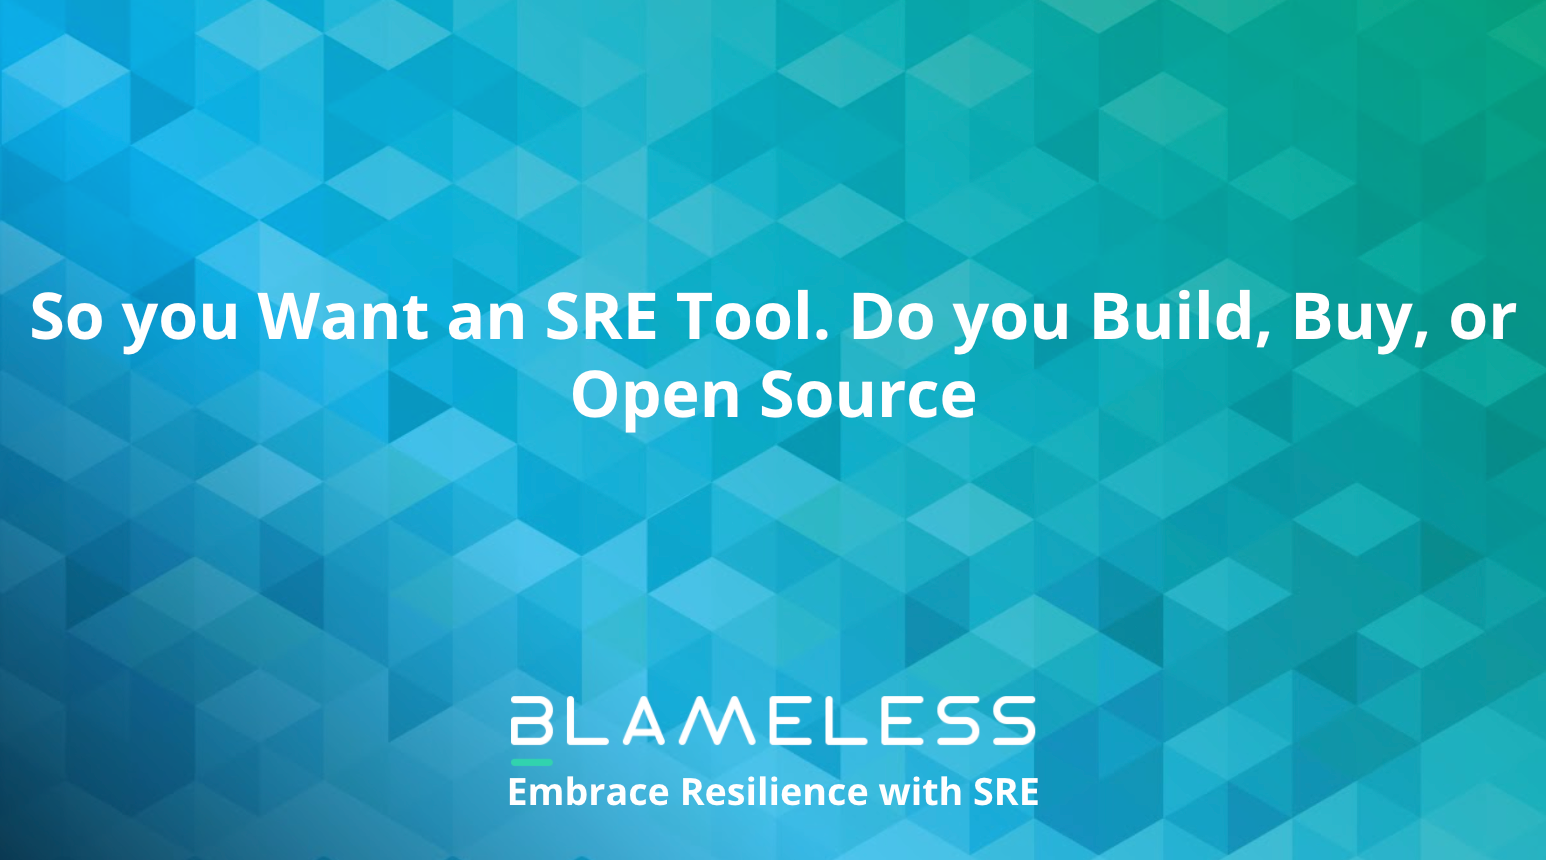 So you Want an SRE Tool. Do you Build, Buy, or Open Source?